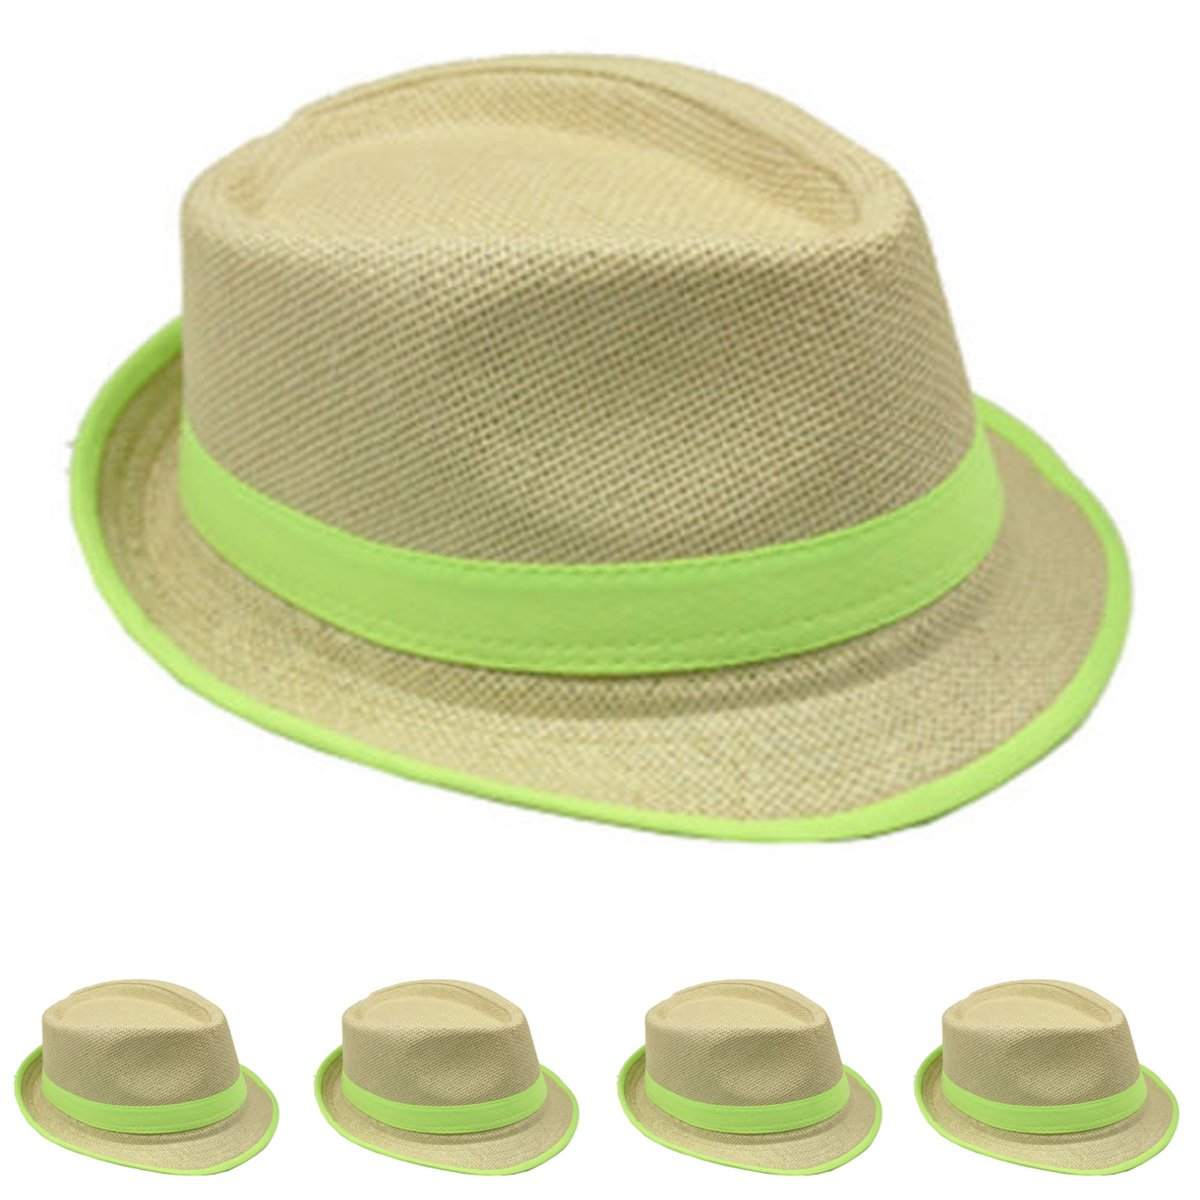 LAfashionist Straw Fedora Hat Trilby Style Banded and Rim Line Gangster Panama Classic Hat